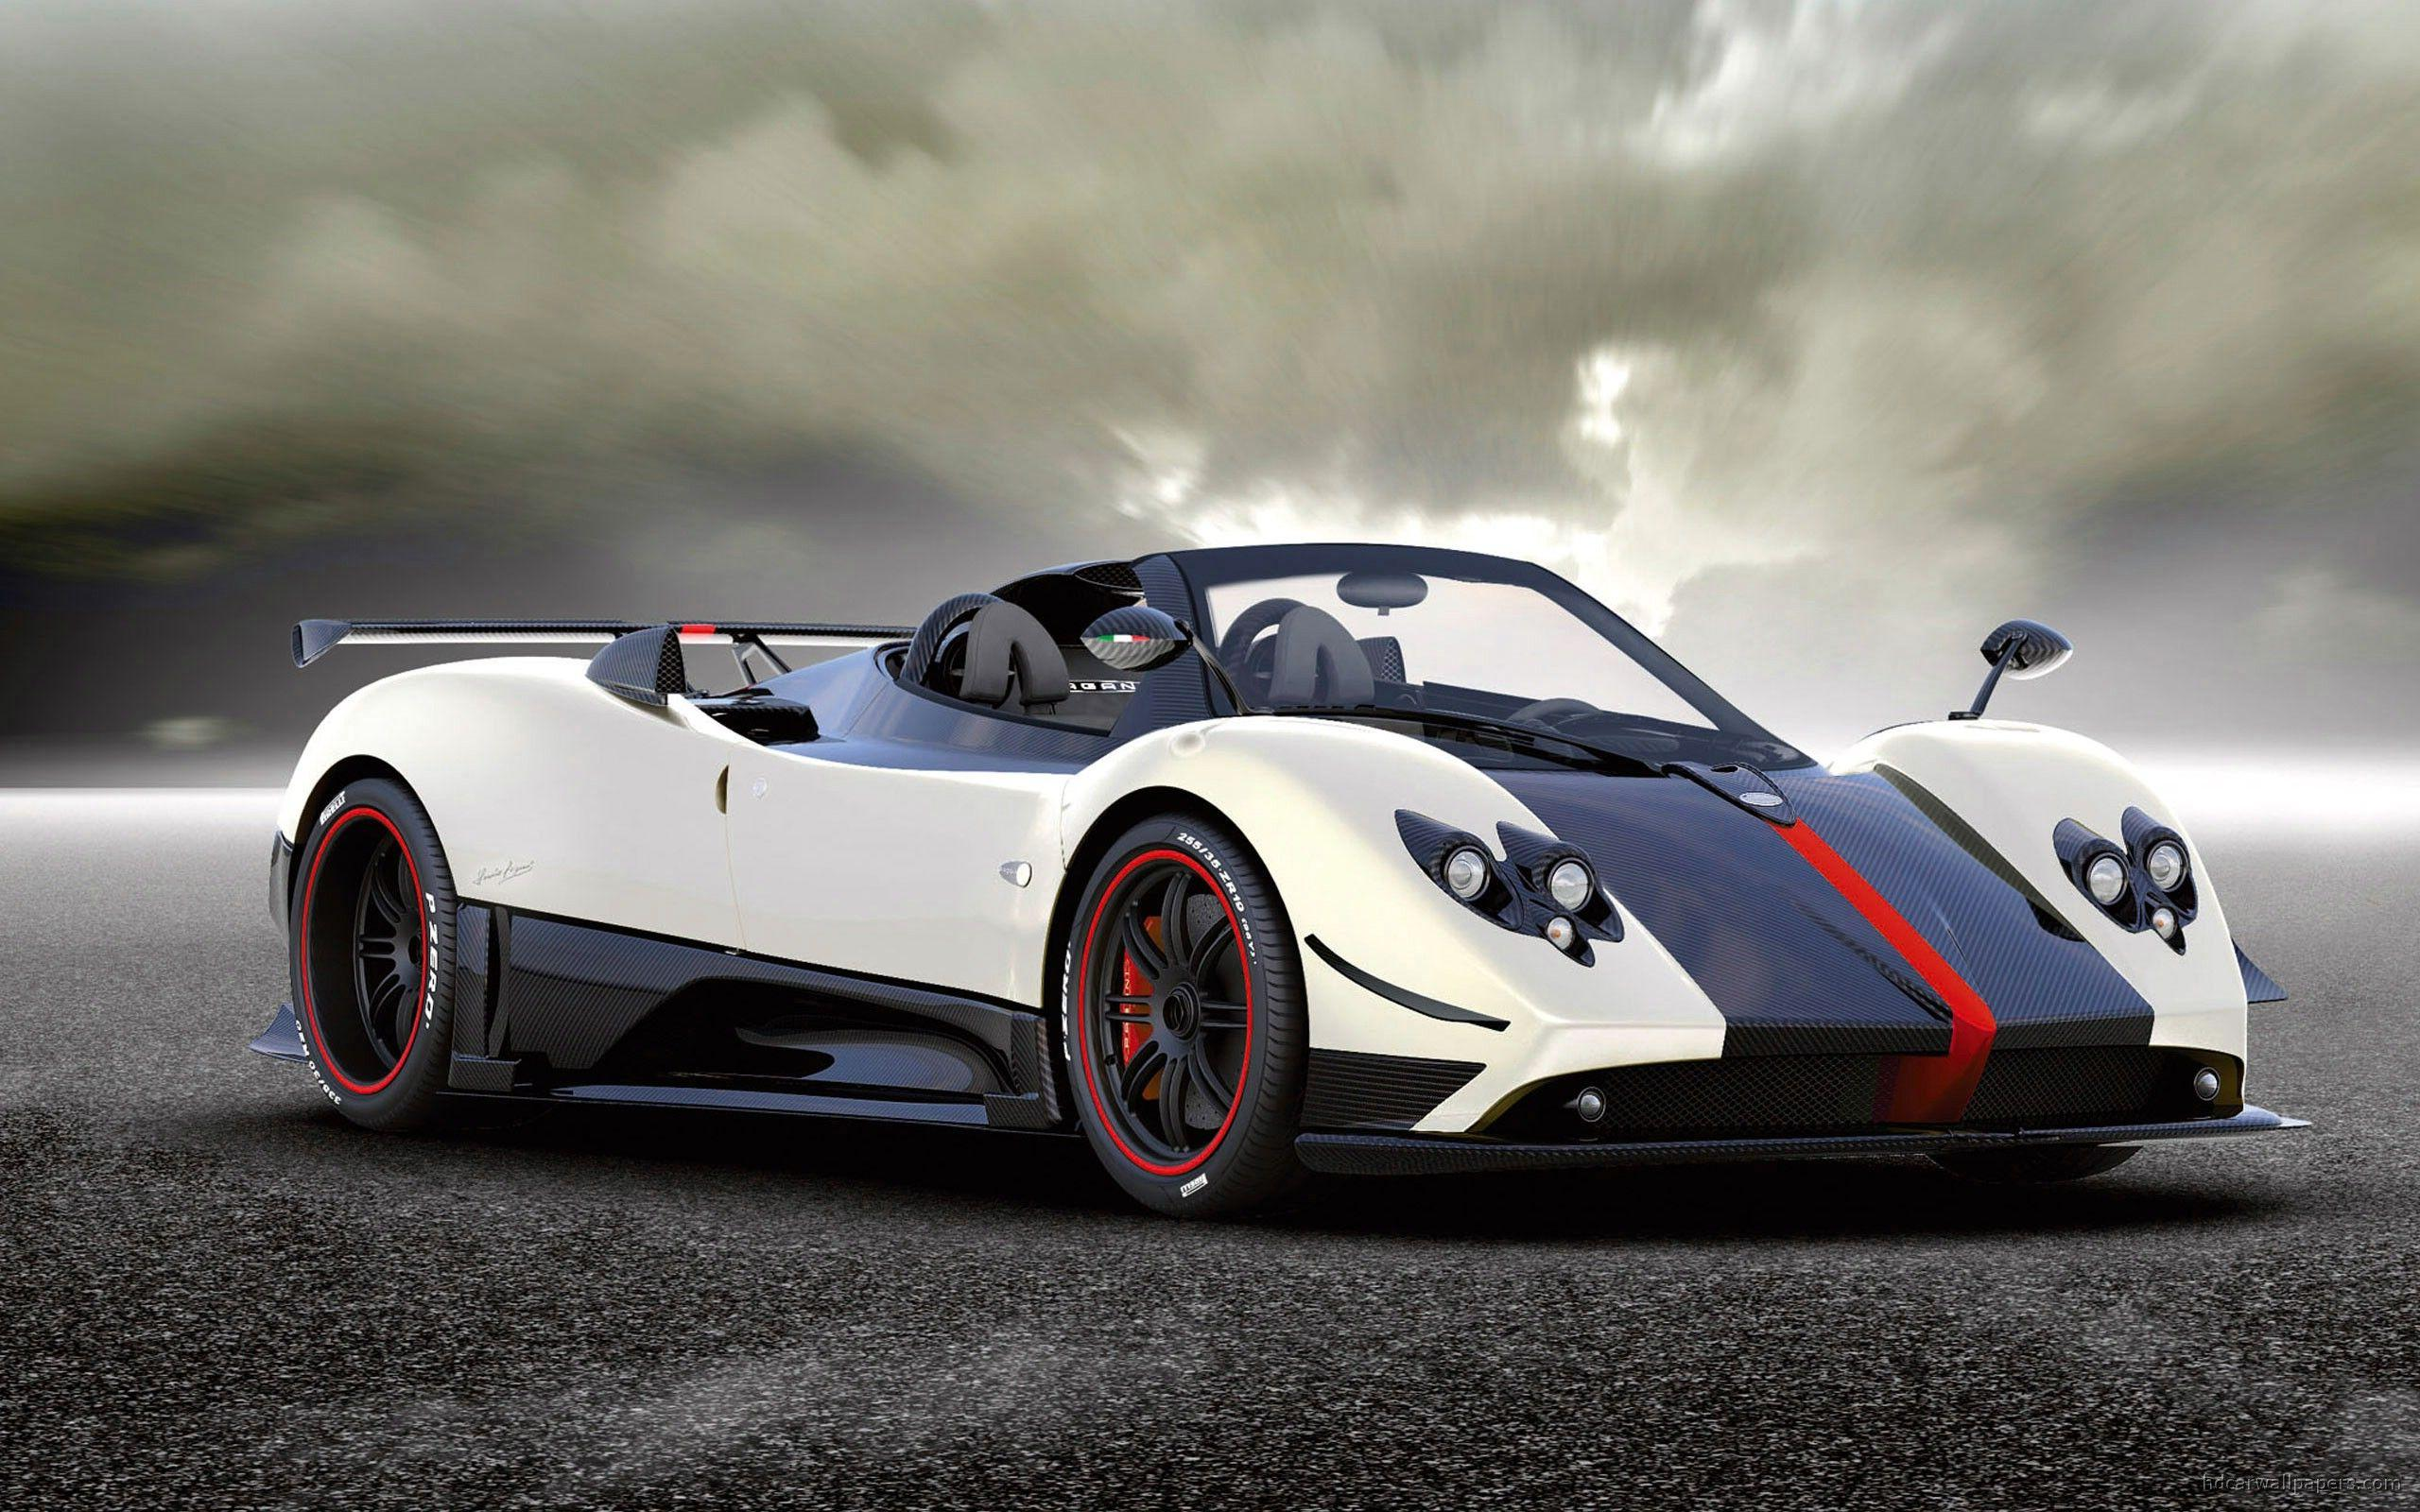 Pagani Zonda R Wallpaper   WallpaperSafari